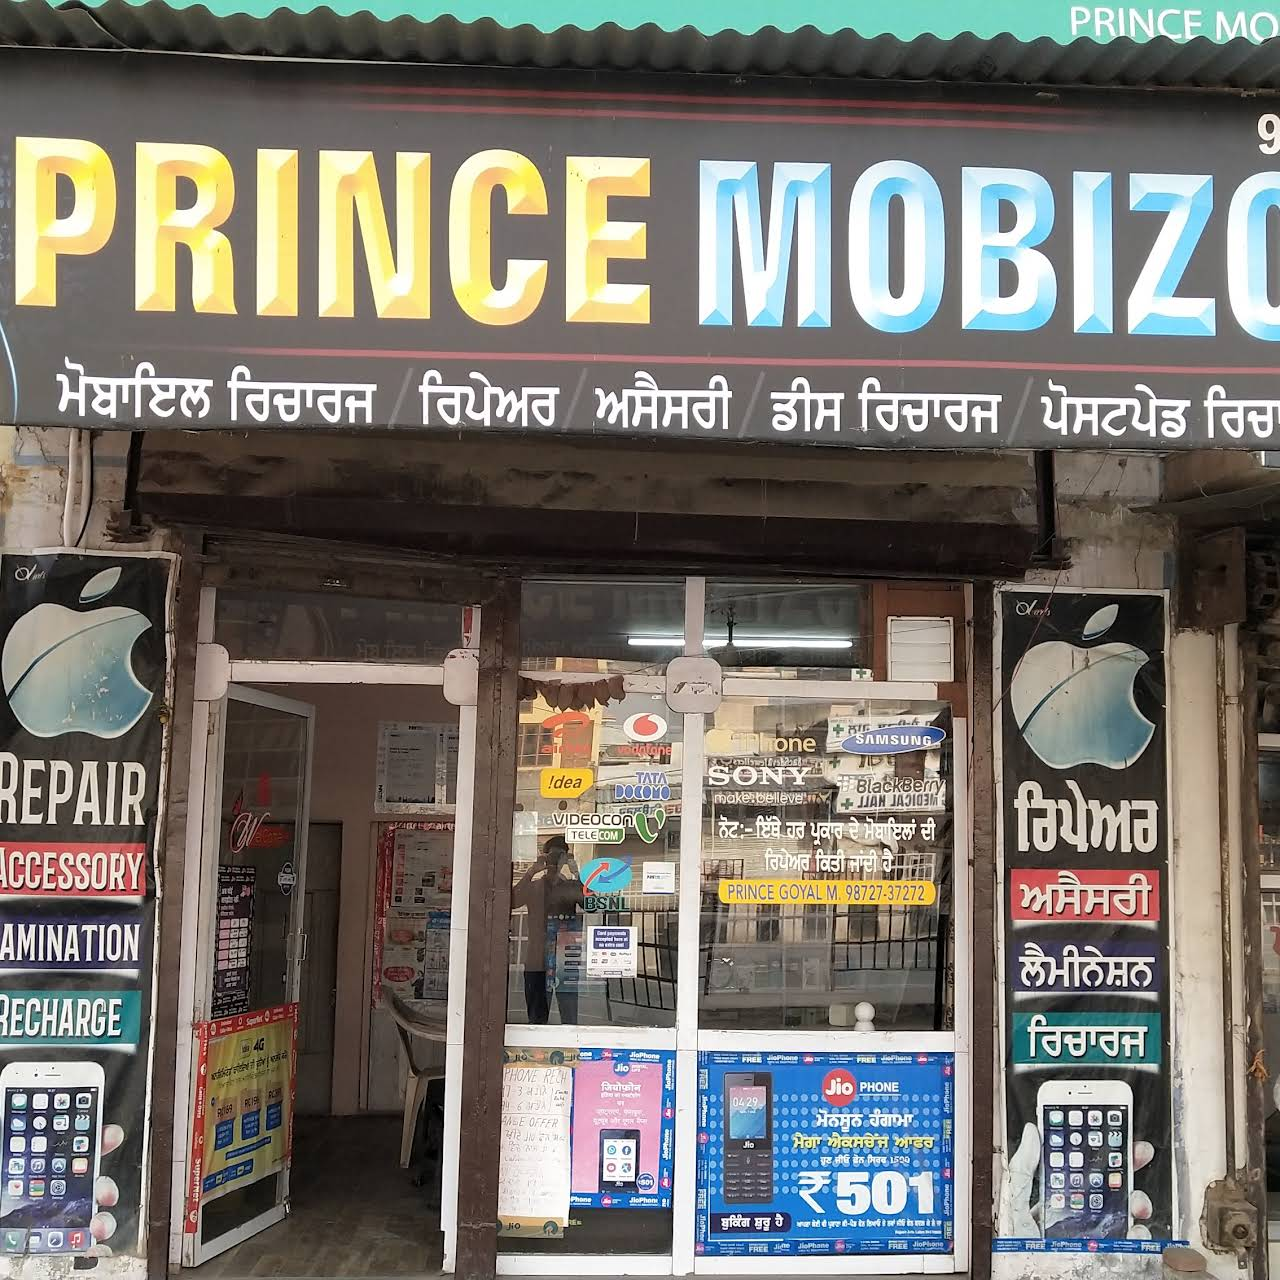 Prince MobiZone - Mobile Phone Repair And Accessory Shop in